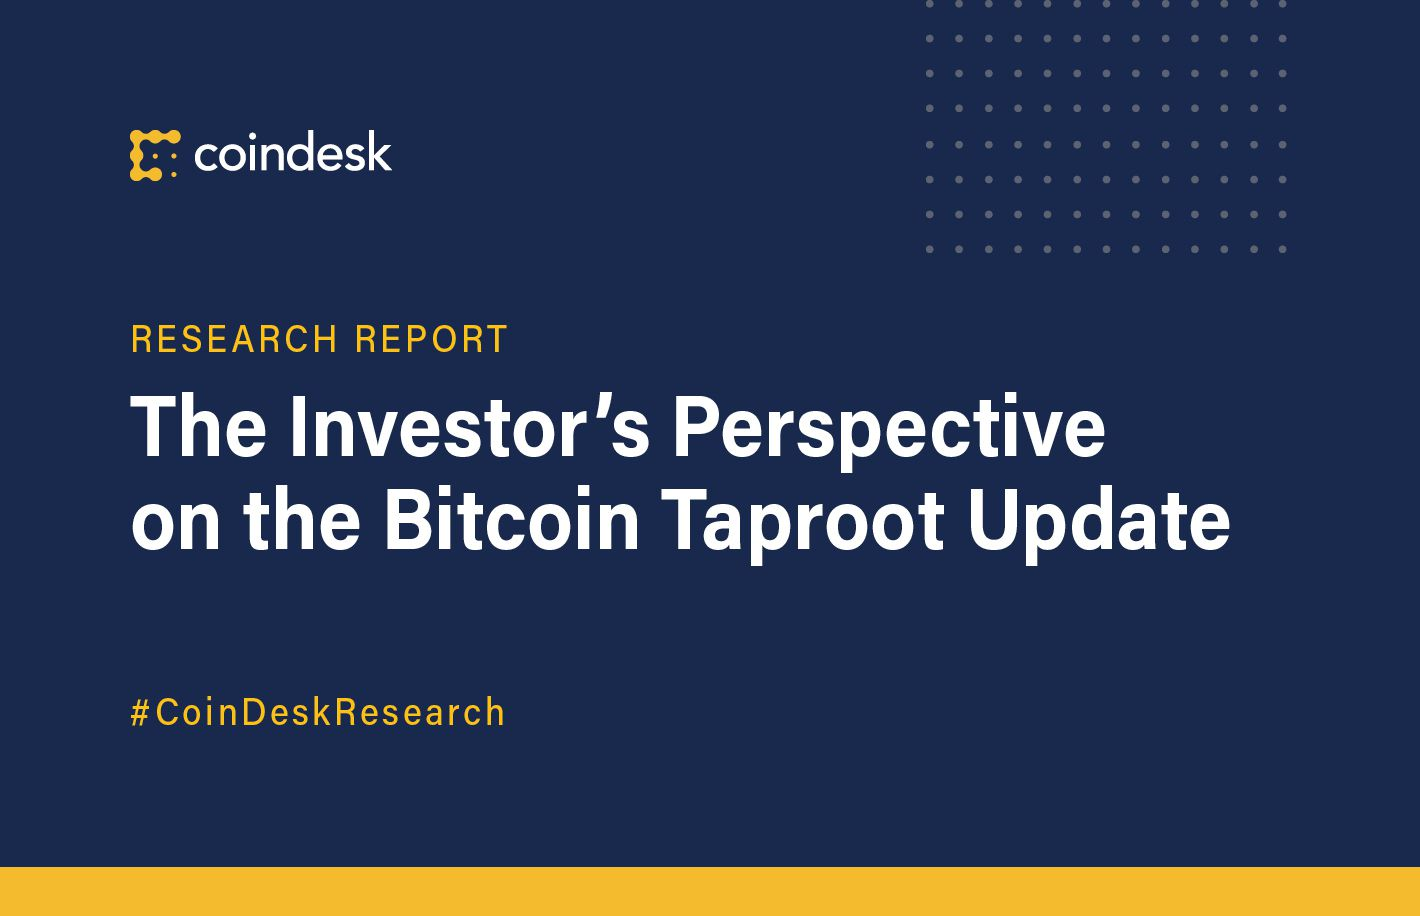 The Investor's Perspective on the Bitcoin Taproot Upgrade